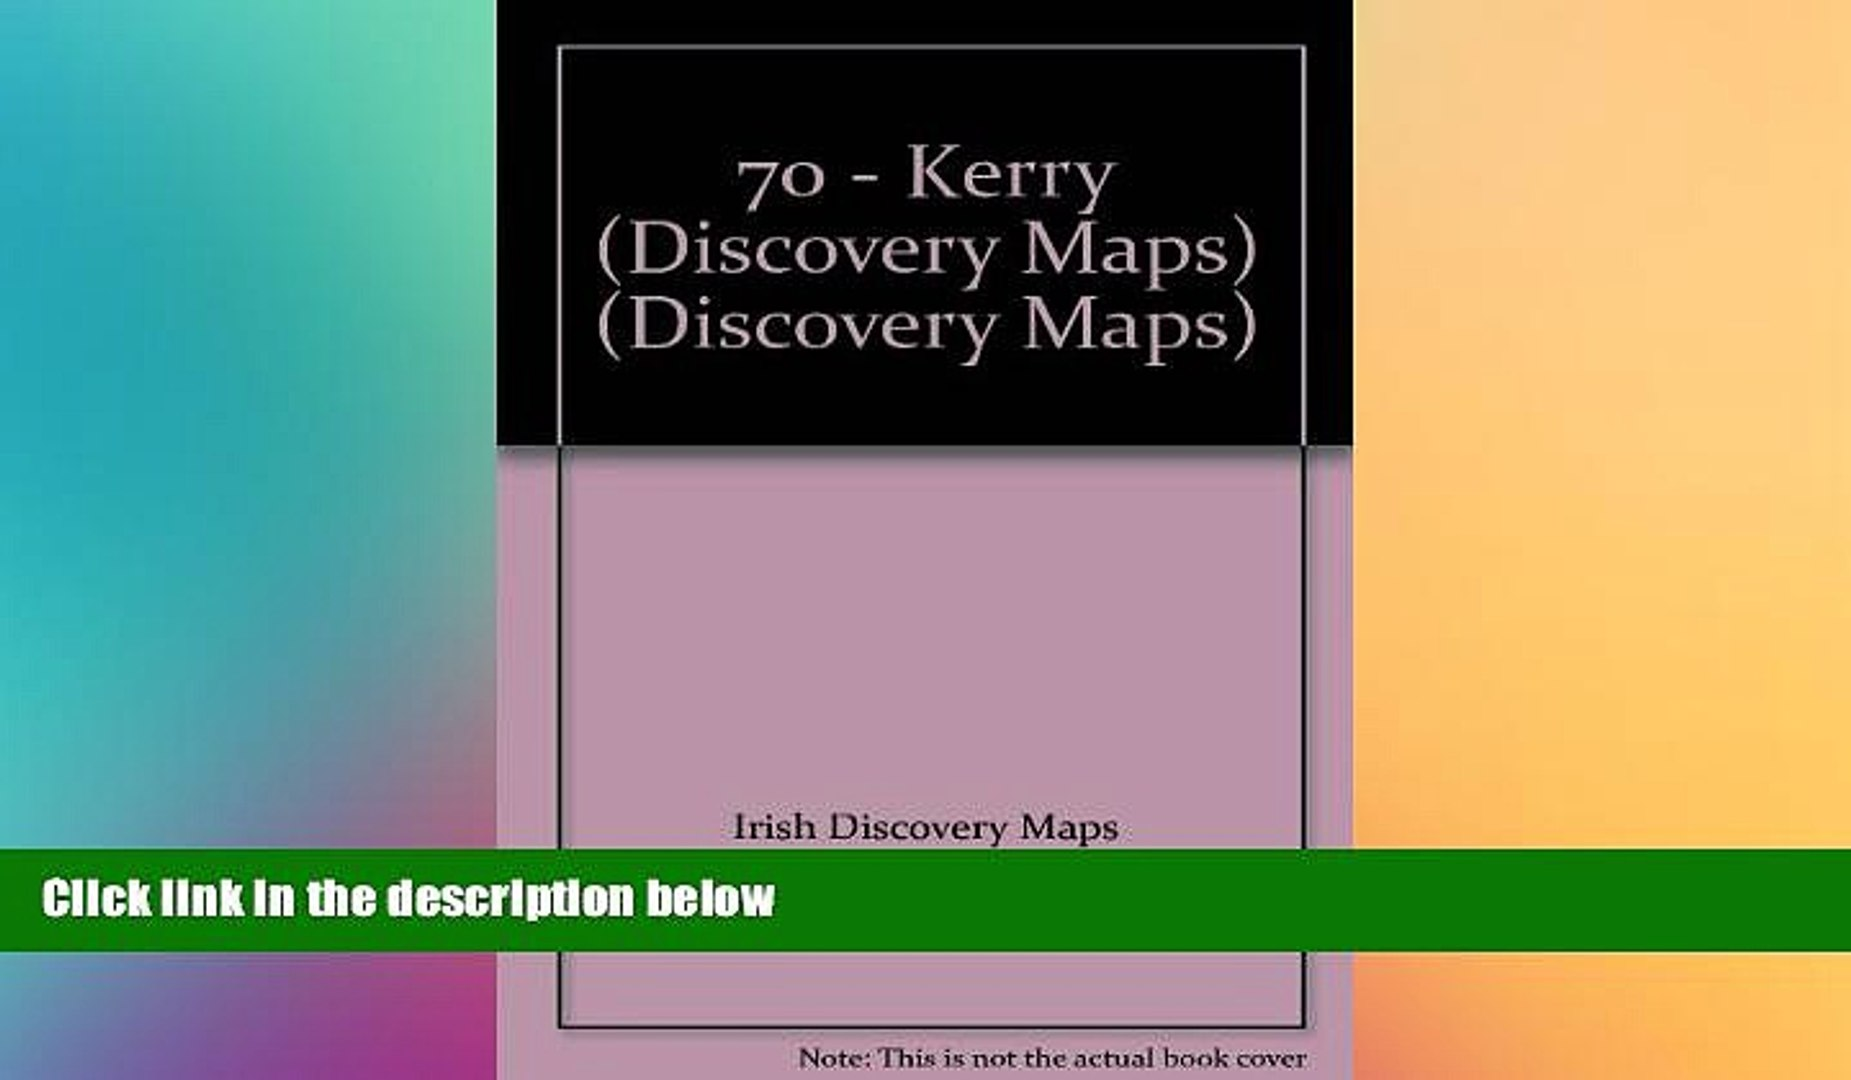 Best Buy Deals  70 - Kerry (Discovery Maps) (Discovery Maps)  [DOWNLOAD] ONLINE